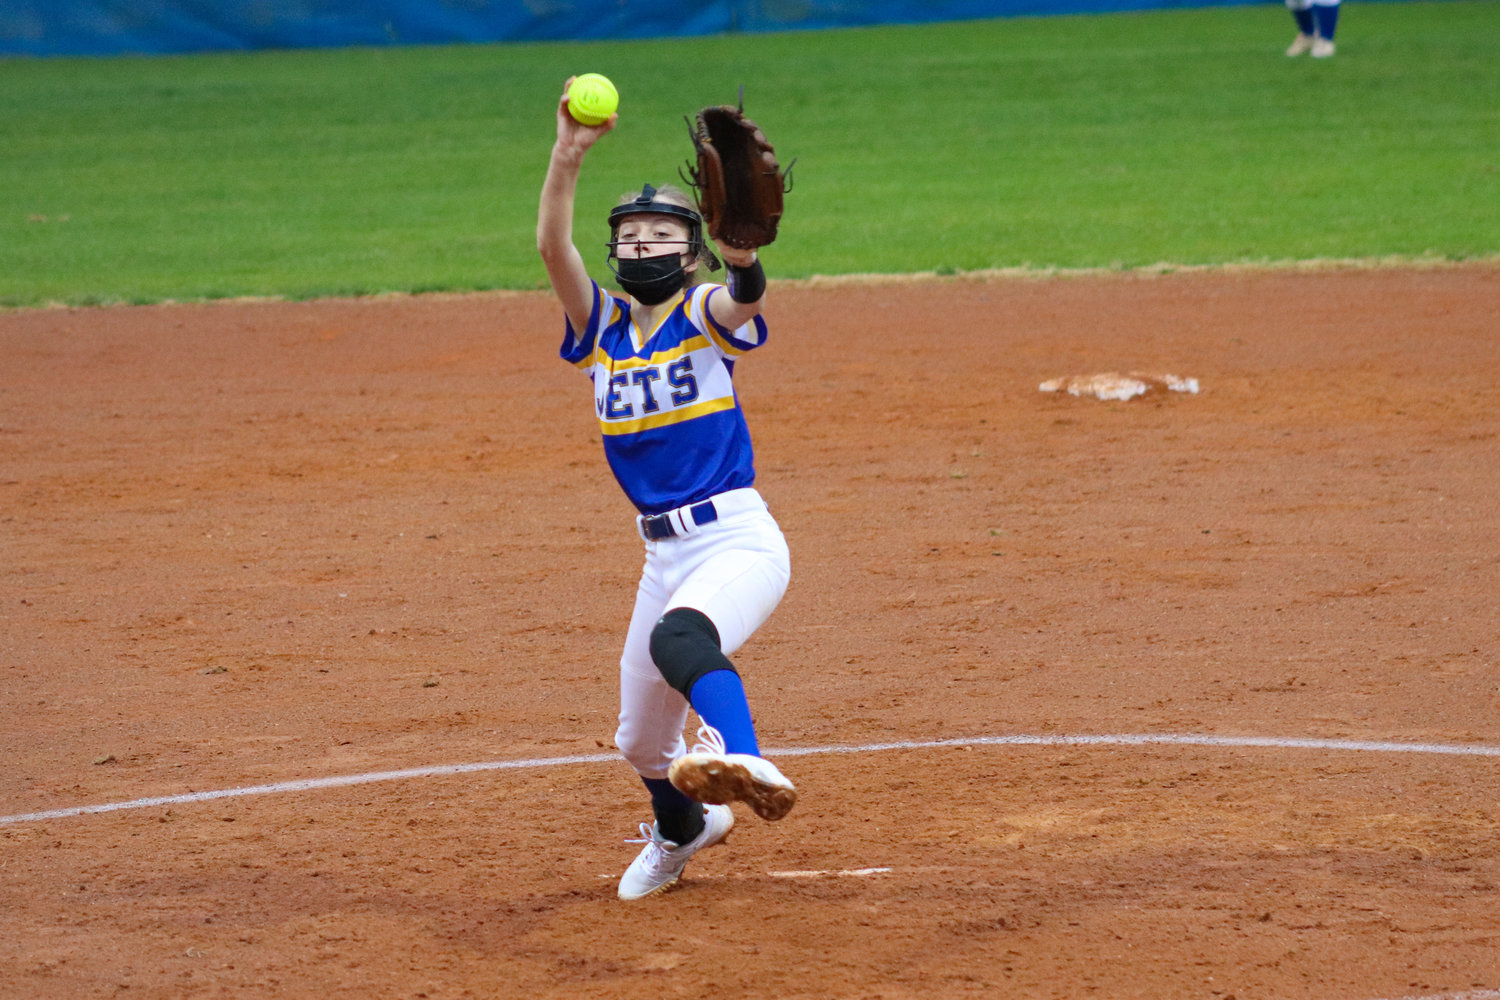 Jordan-Matthews sophomore pitcher Macy Beavers winds up a pitch in her team's season-opening loss to Randleman, 15-5, on Tuesday. Beavers registered two strikeouts on the night.